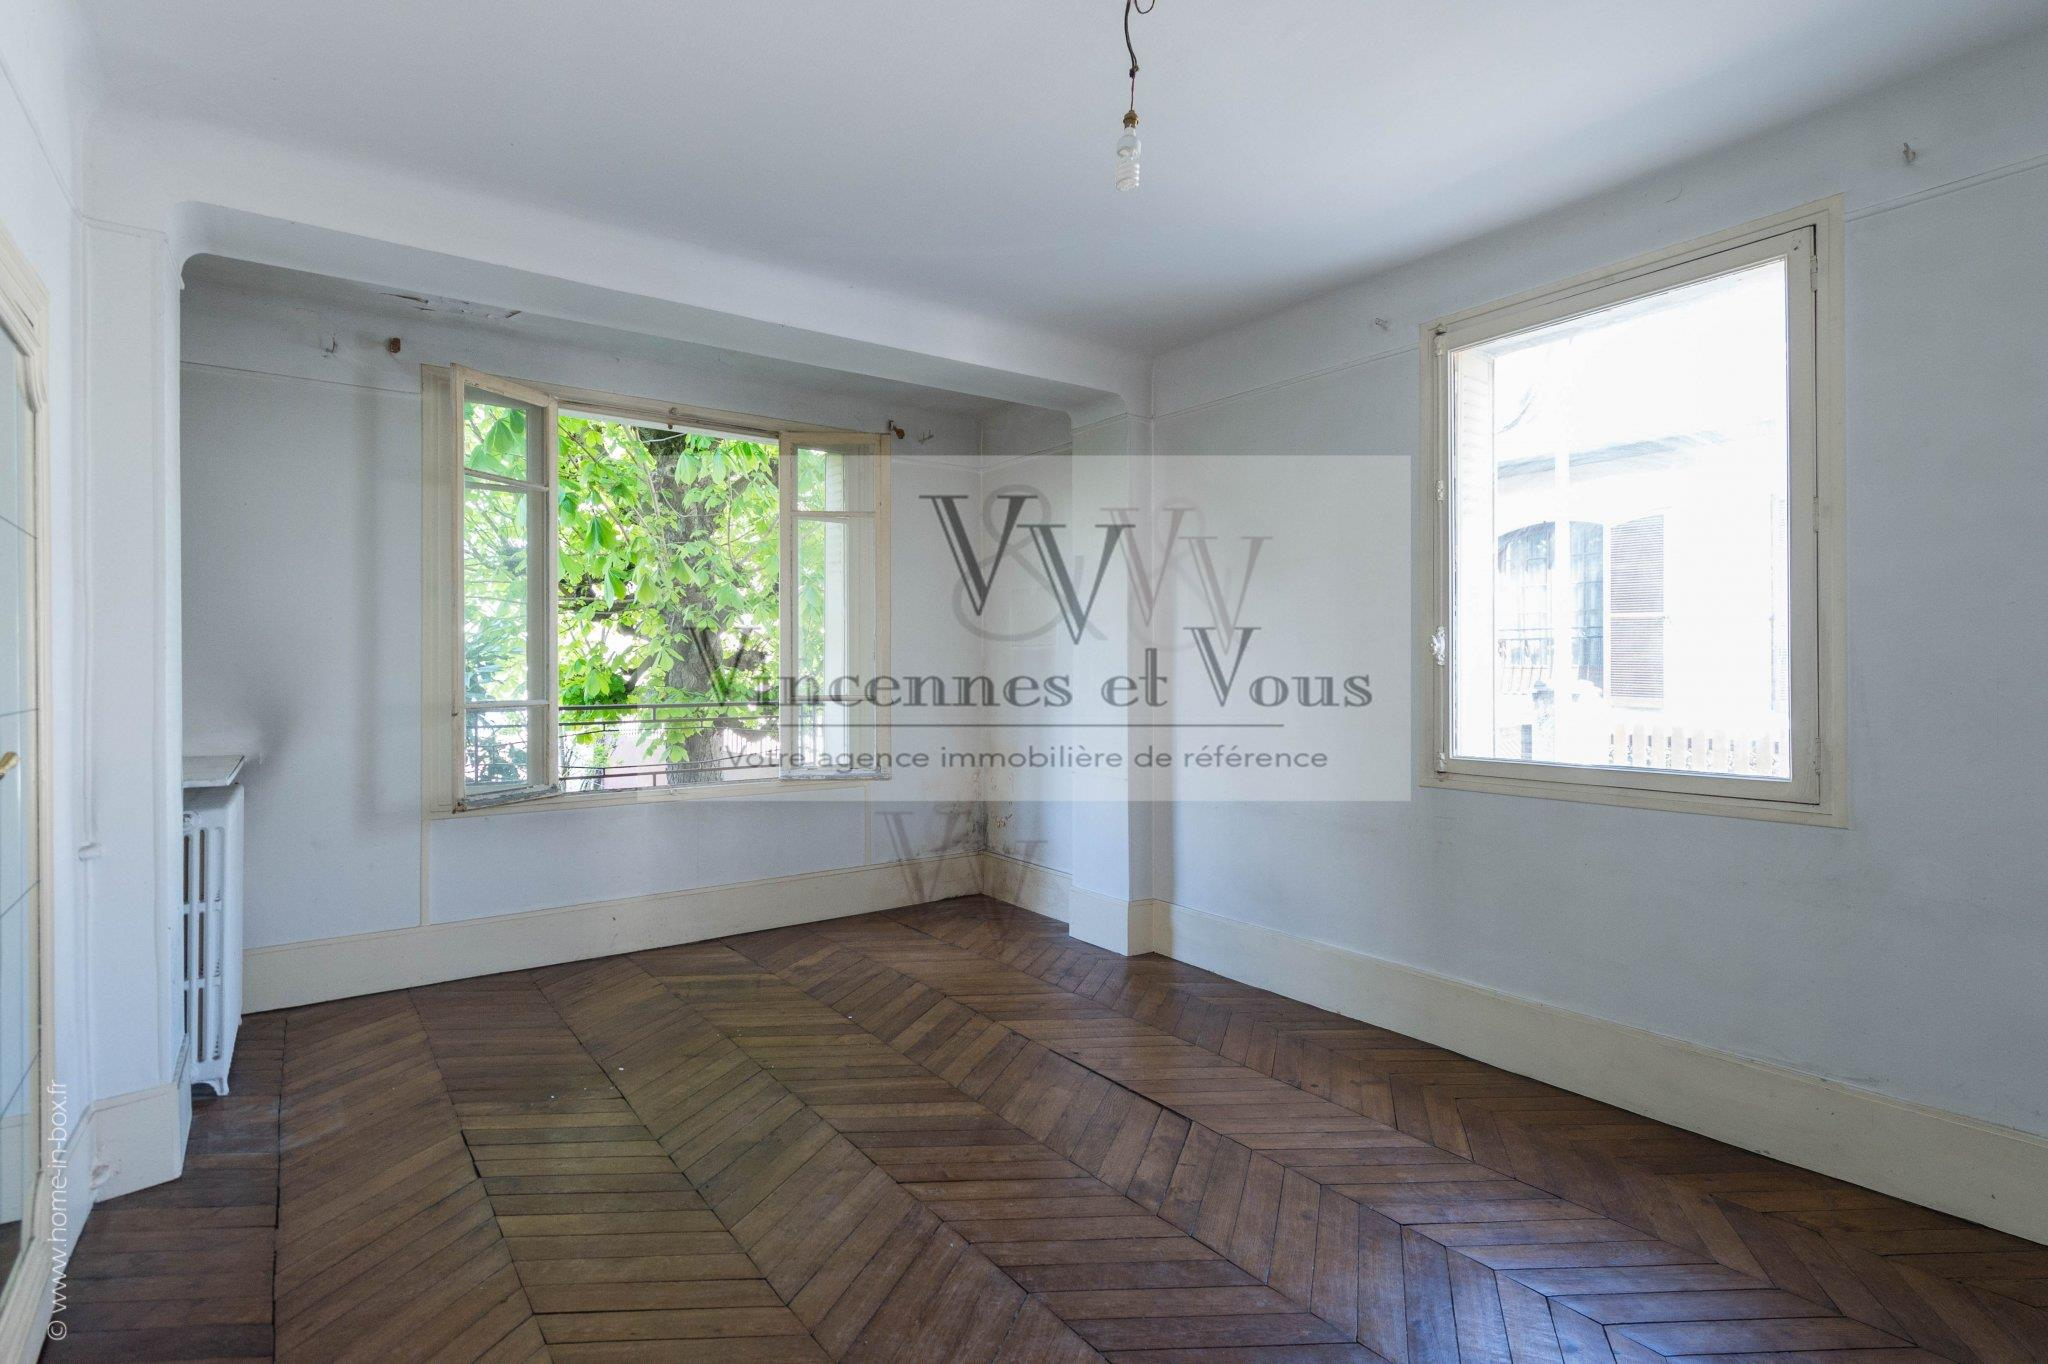 Photo 1 Vente Maison  vincennes